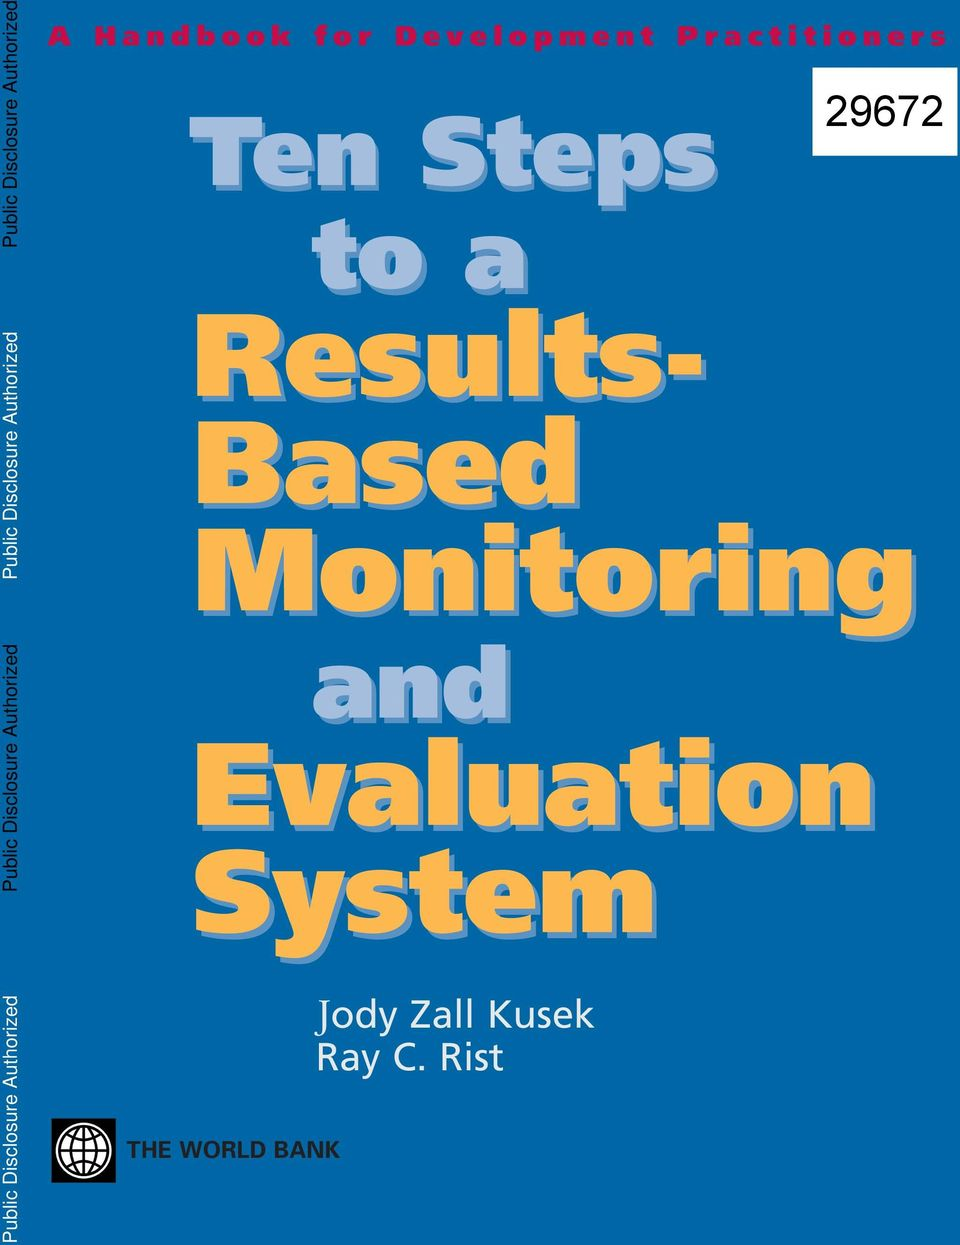 Ten Steps to a Results- Based Monitoring and Evaluation System